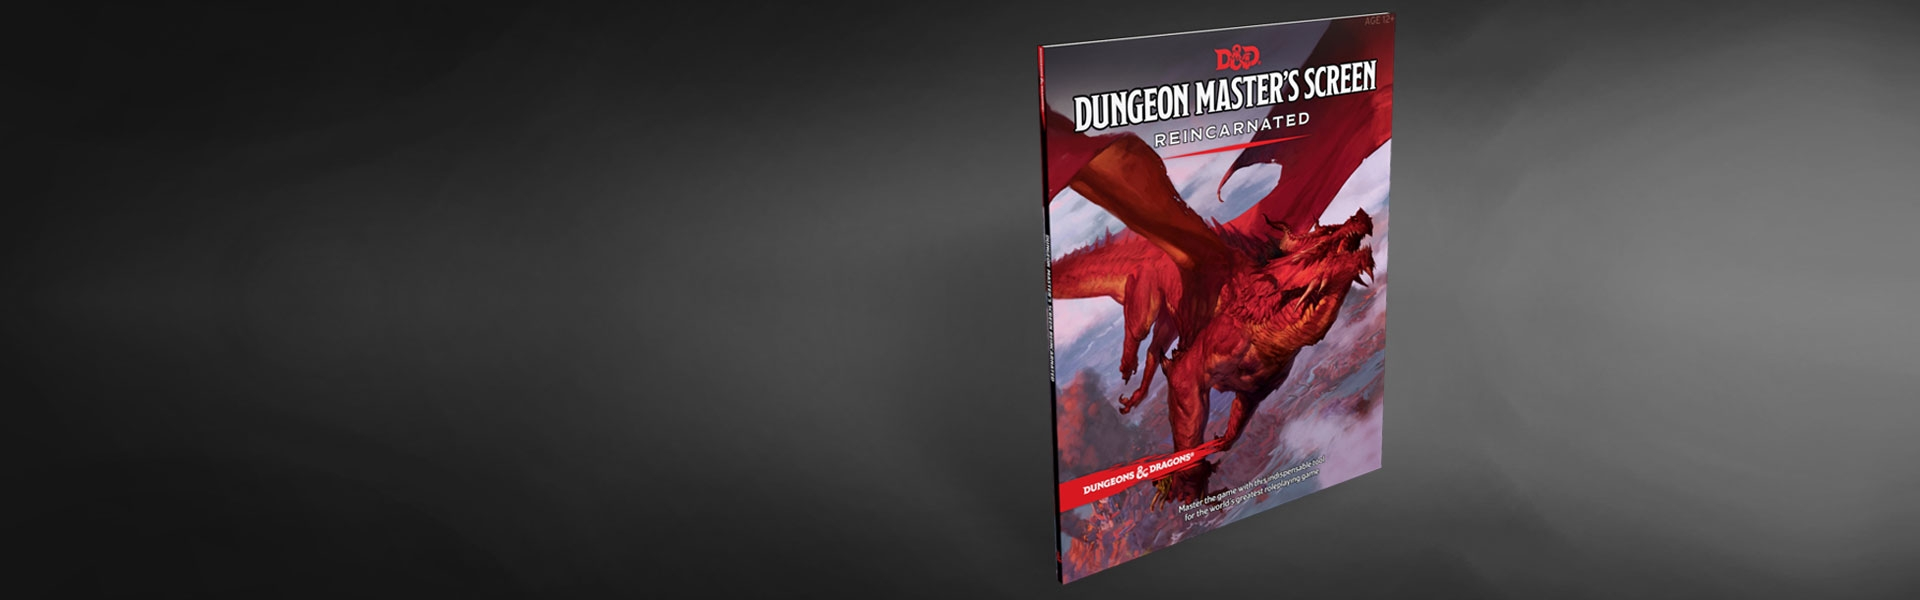 Dungeon Master's Screen Reincarnated | Dungeons & Dragons